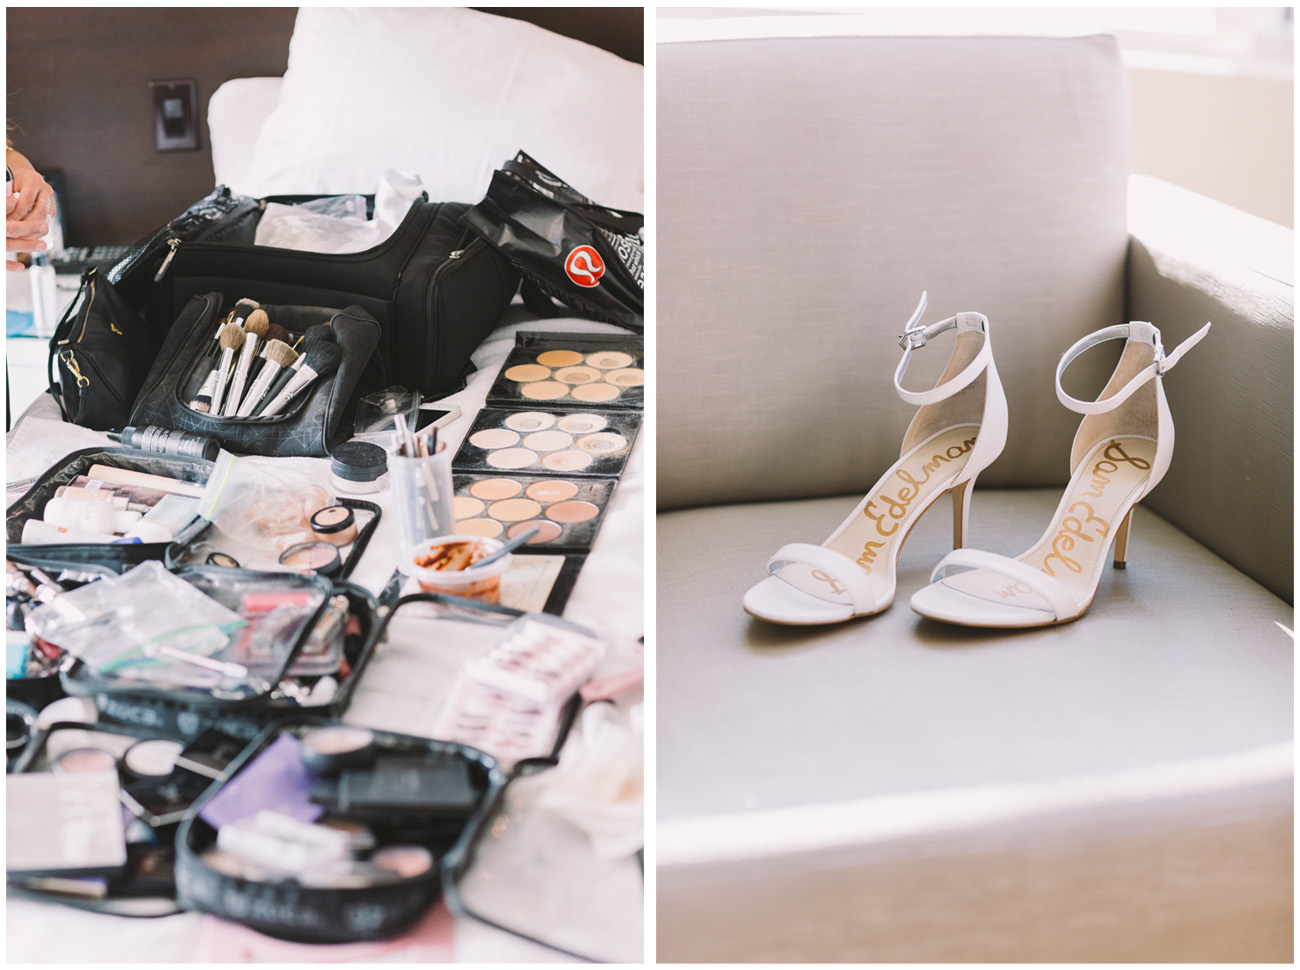 Make up and shoes on display